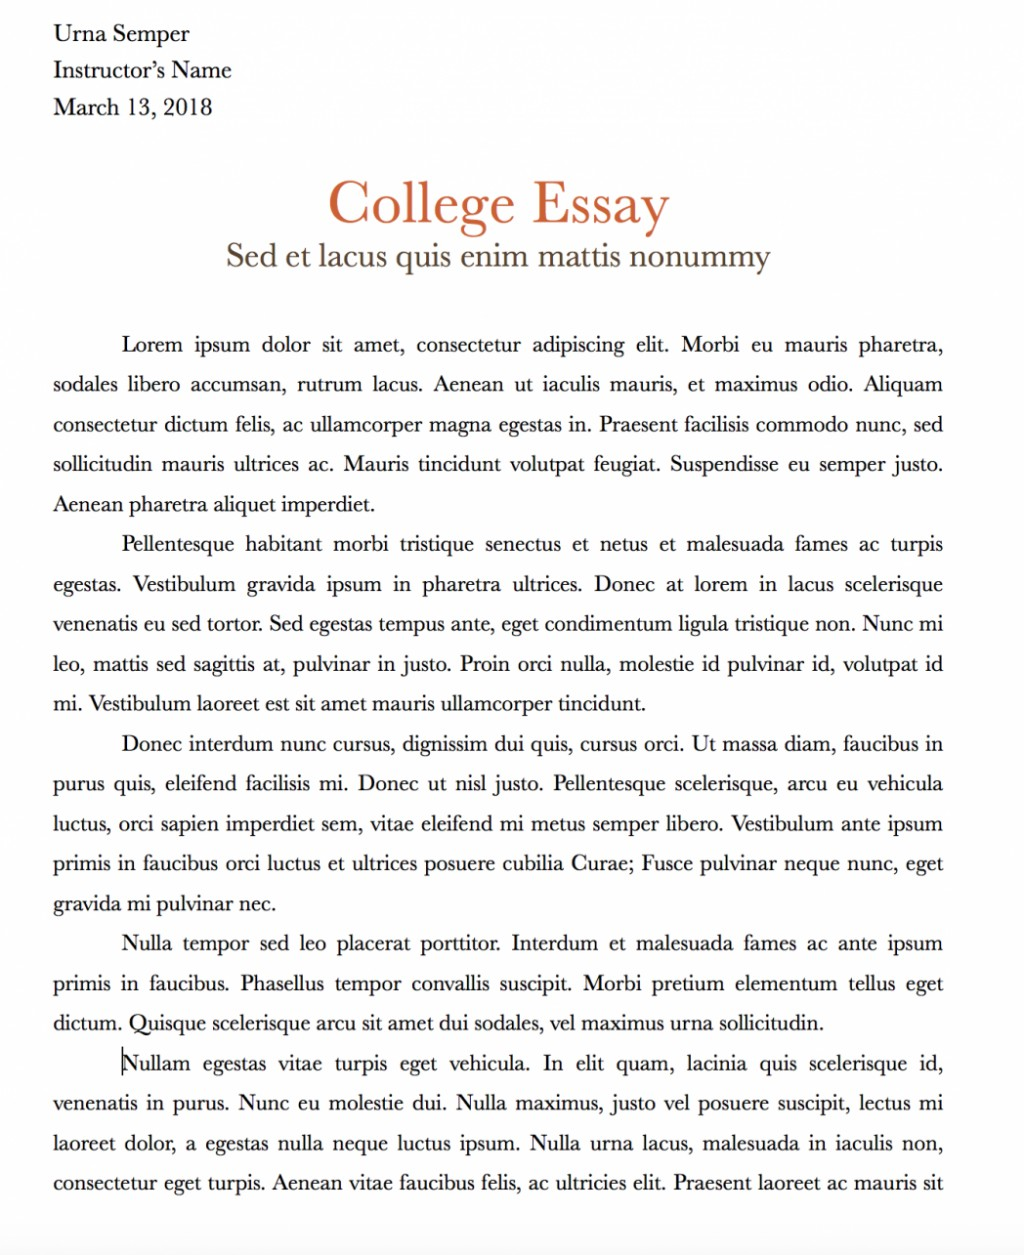 001 Essay Example How To Start Off College Write An Interesting And Captivating Examples Ctwrvkoshcimzkxyhyl8 With Parag Scholarship About Best A Large